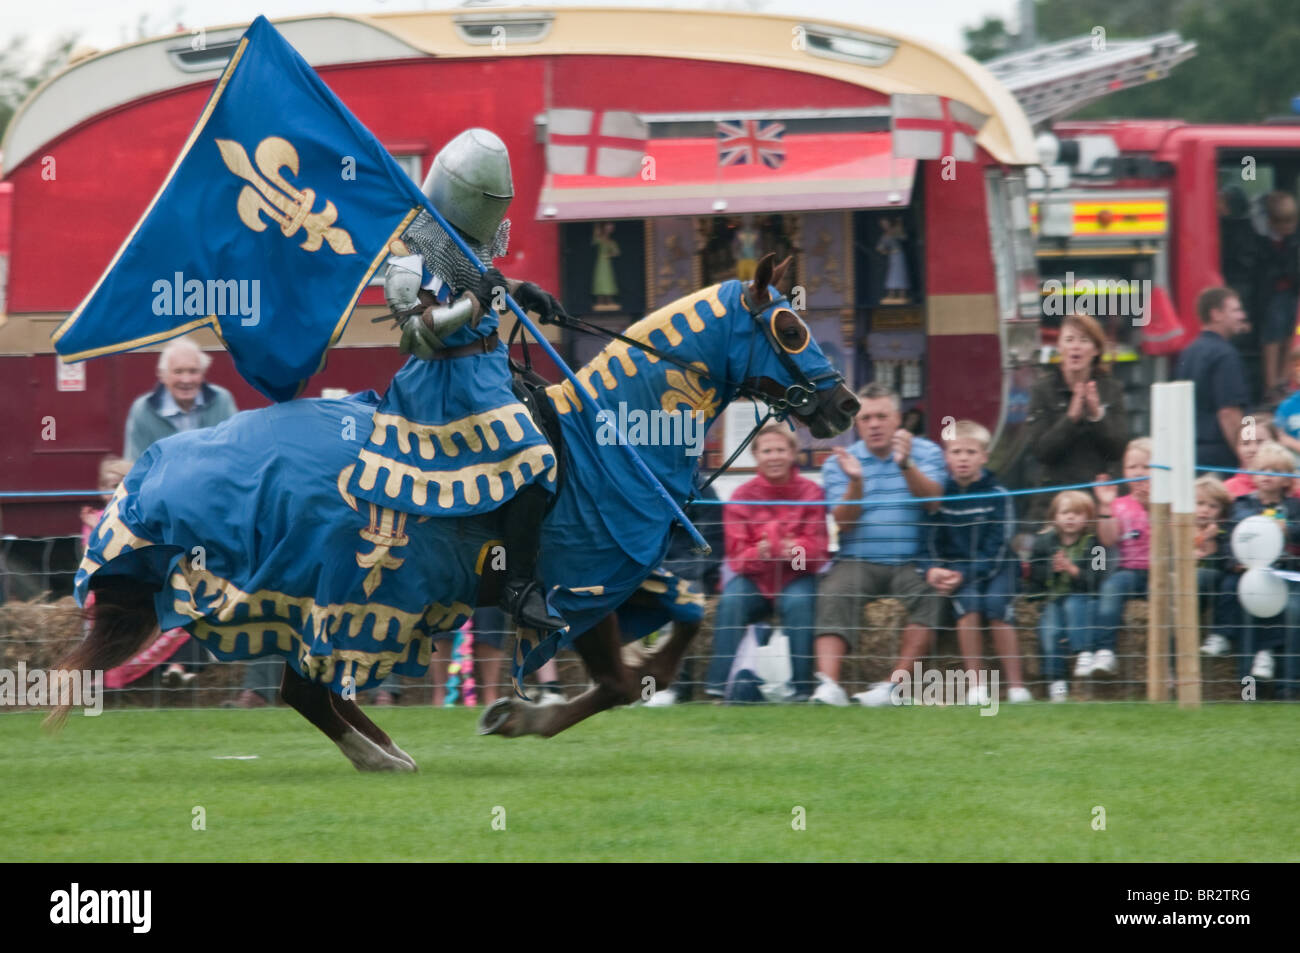 The Knights of the Damned medieval jousting team performing at the Essex Country show - Stock Image